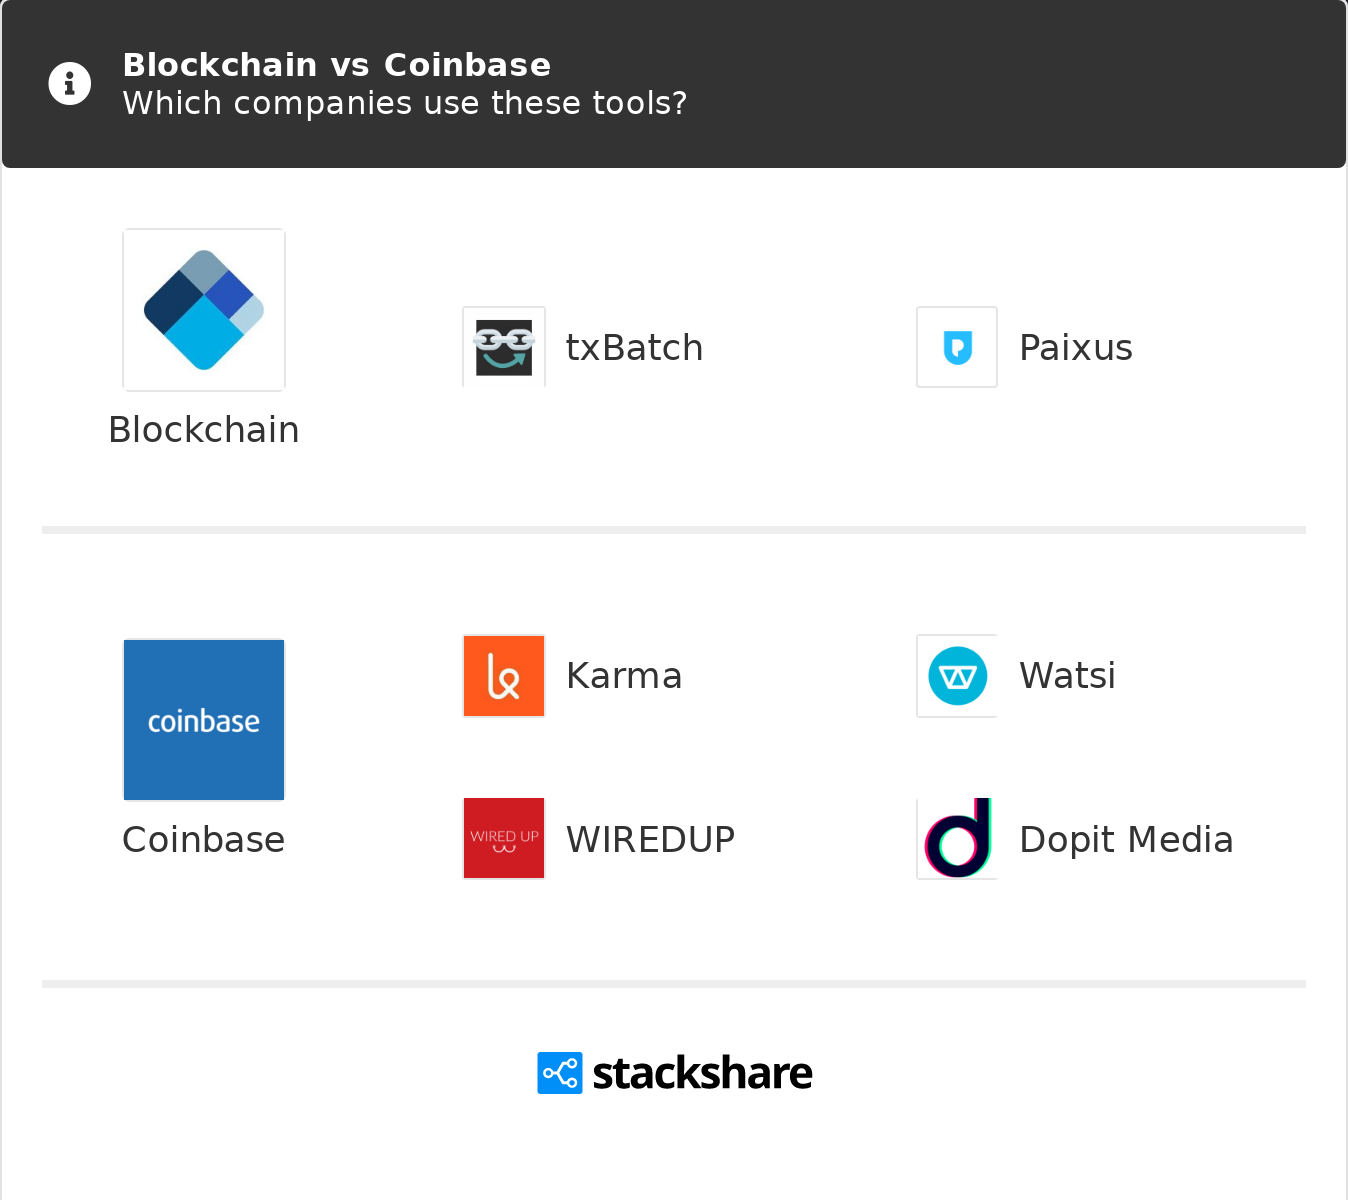 which is better blockchain or coinbase